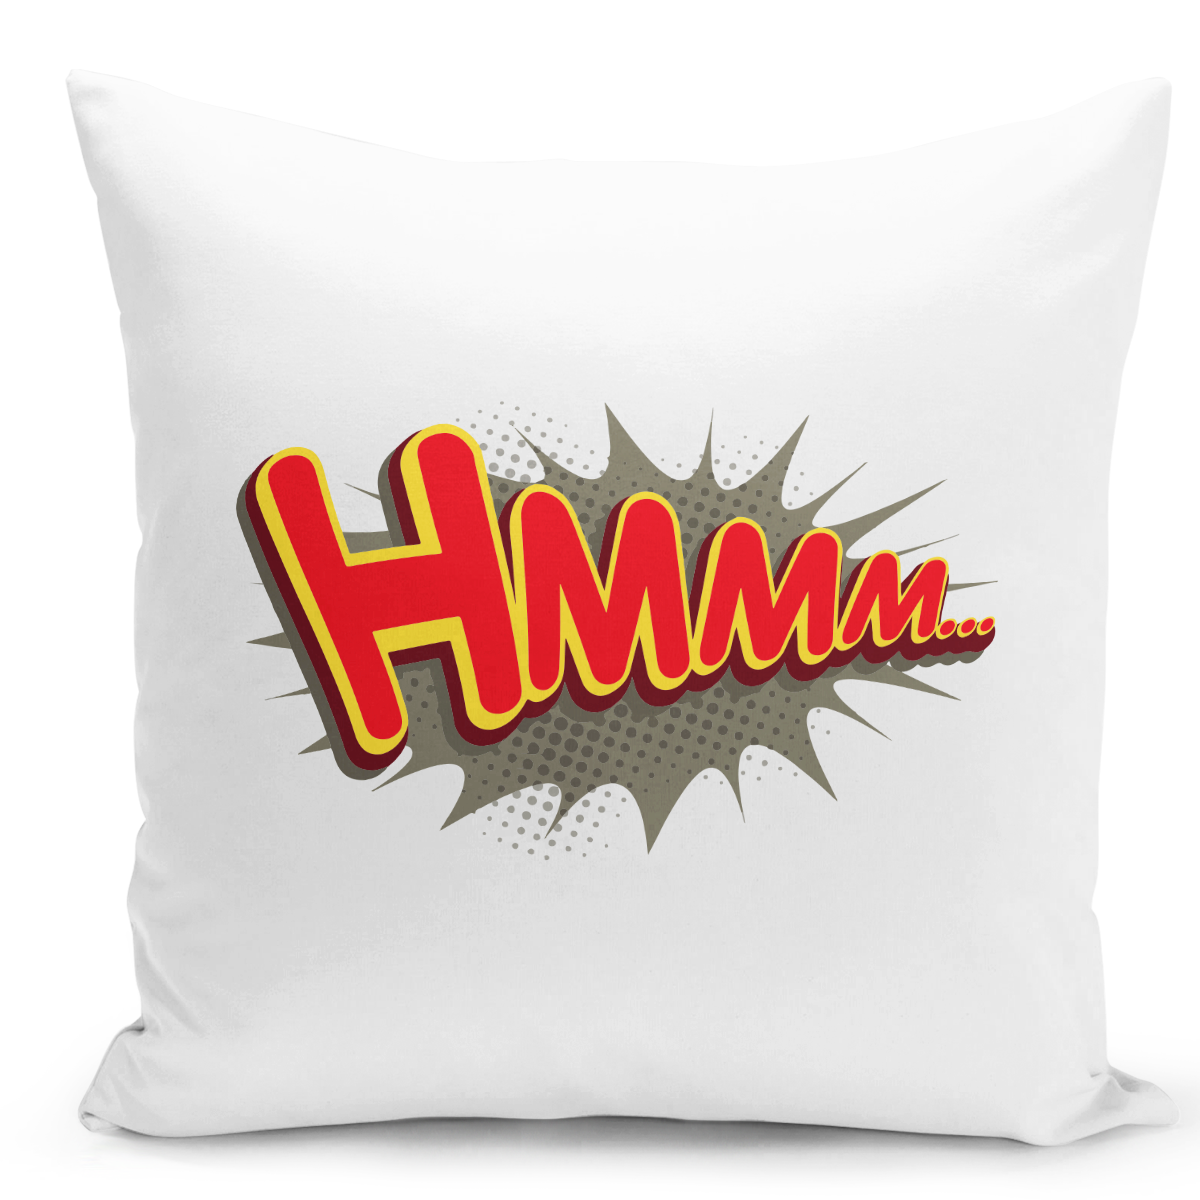 White-Throw-Pillow-Hmmm-Funny-Conic-Style-Pillow---Durable-White-16-x-16-inch-Square-Modern-Livingroom-Decorative-Pillow-16x16-inch-